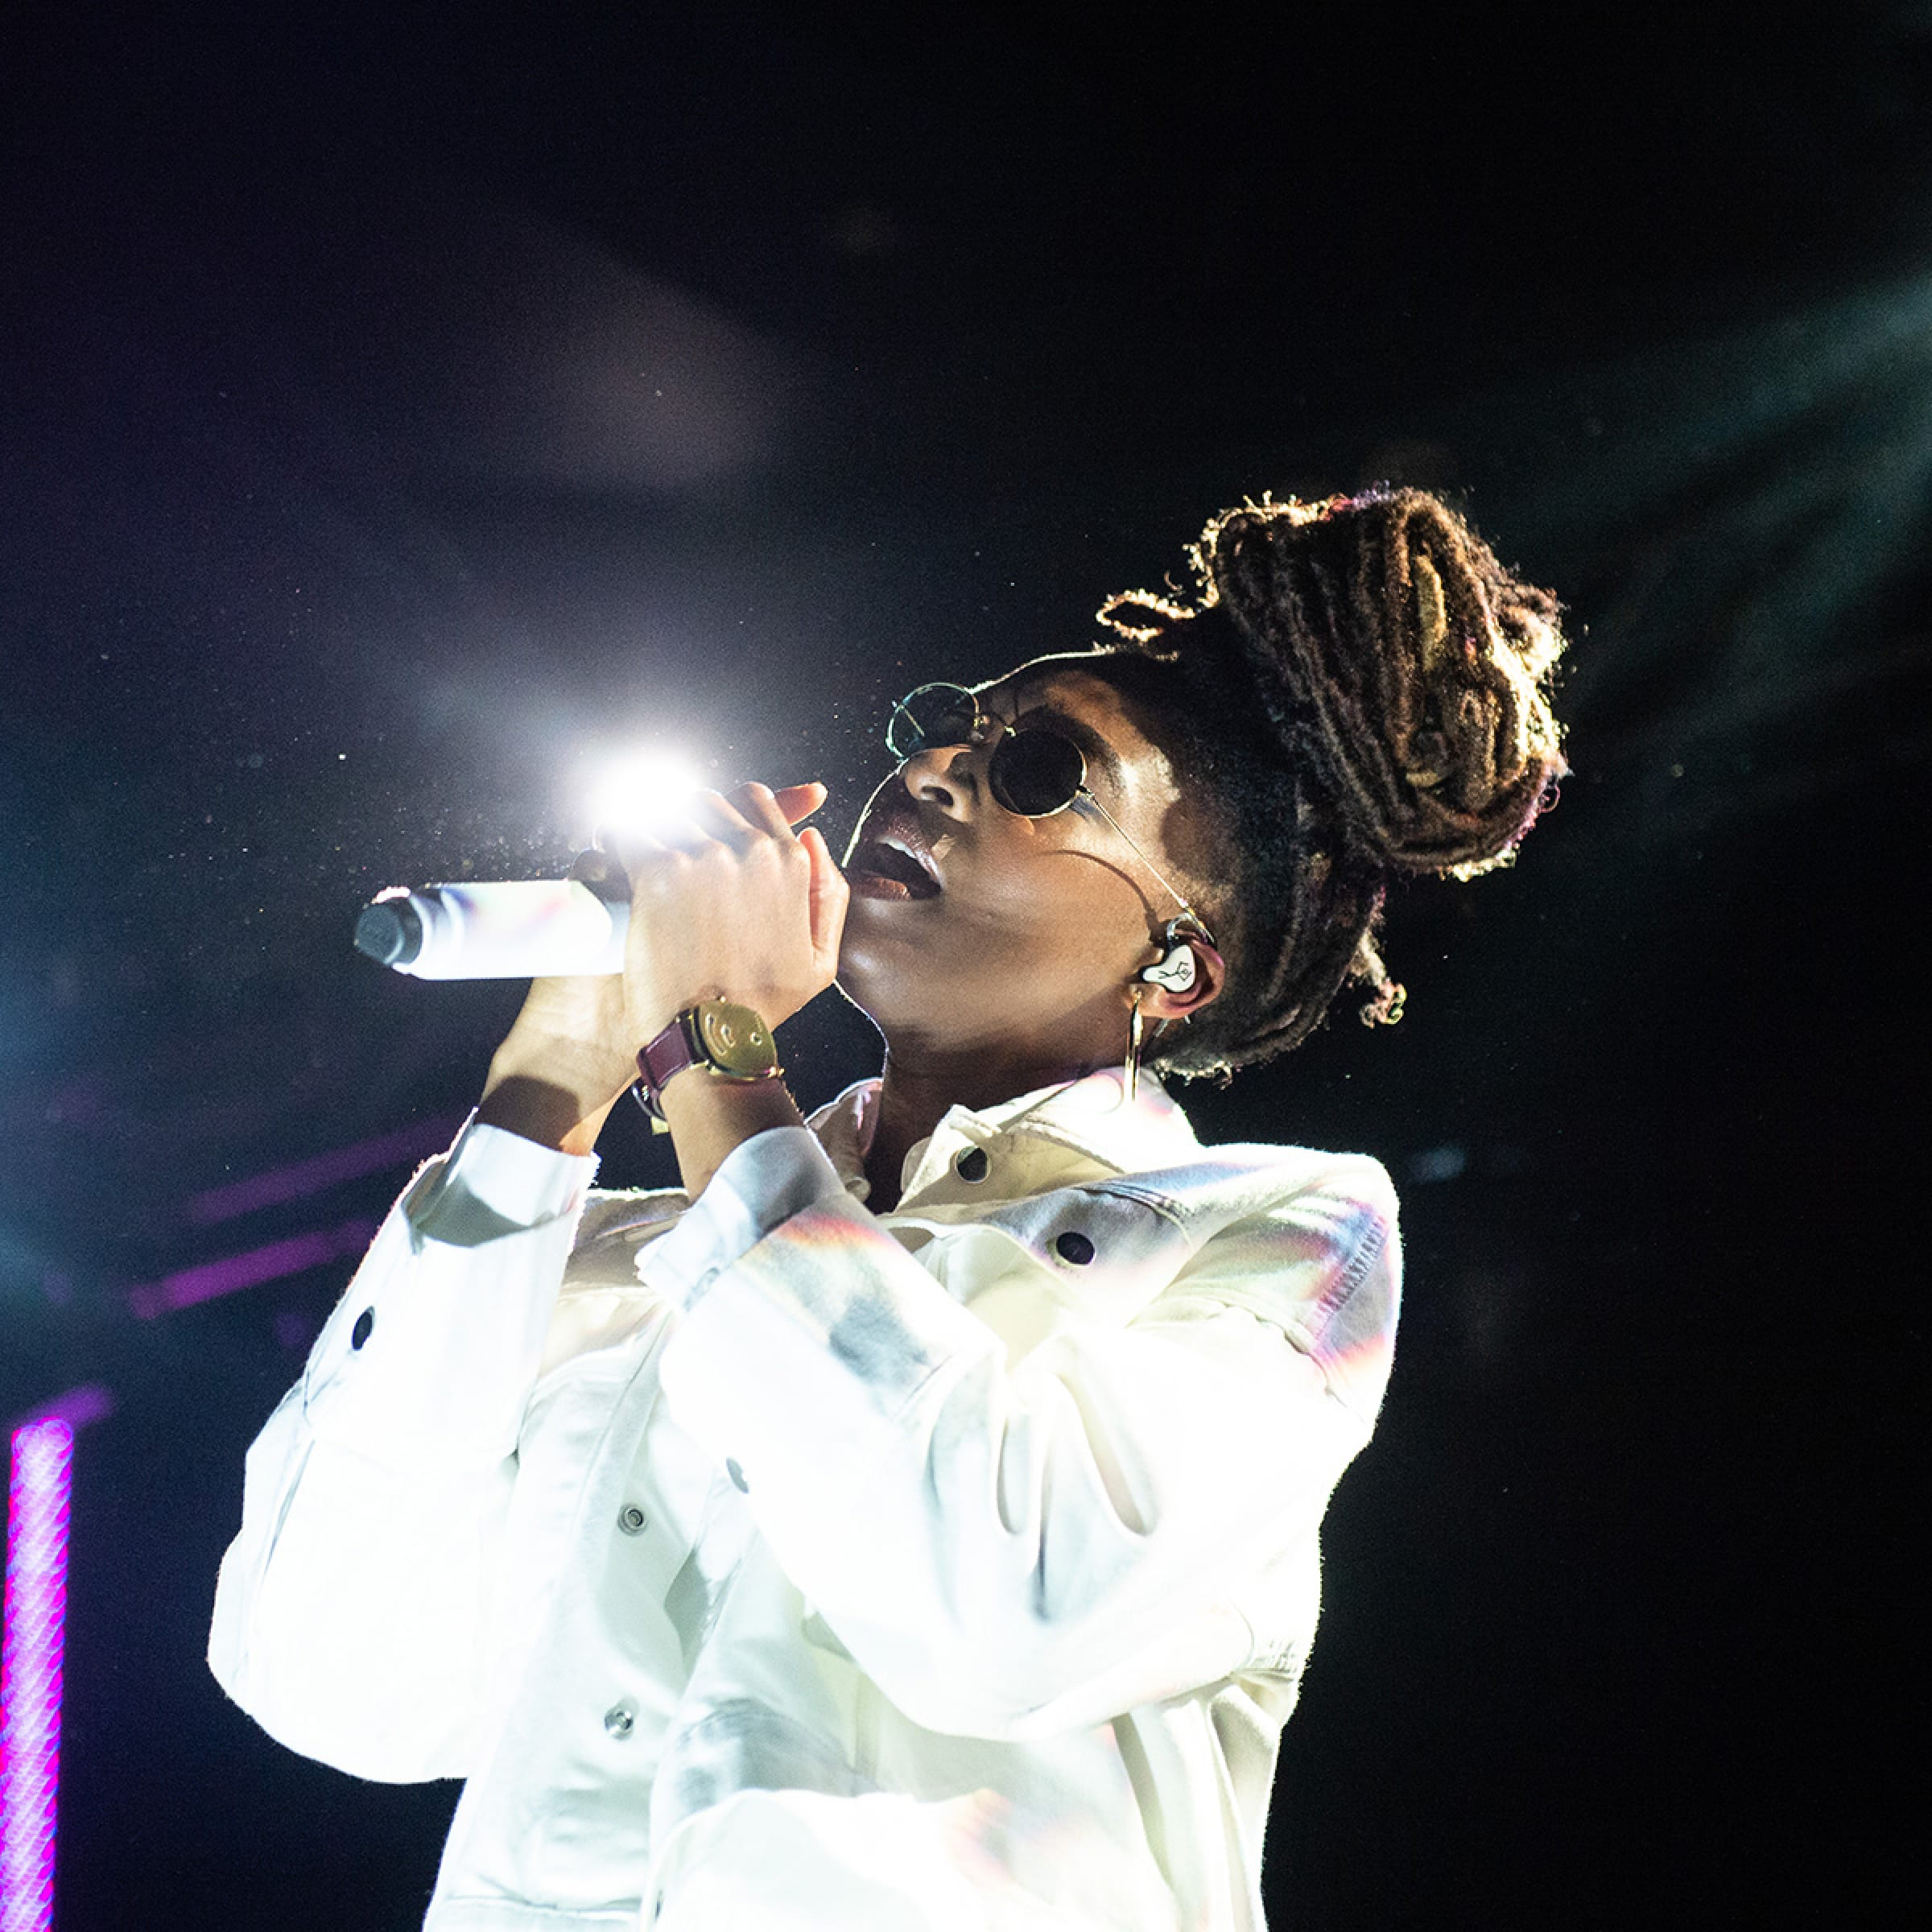 Little Simz performs on stage at EartH Hackney on October 29, 2019 in London, United Kingdom.